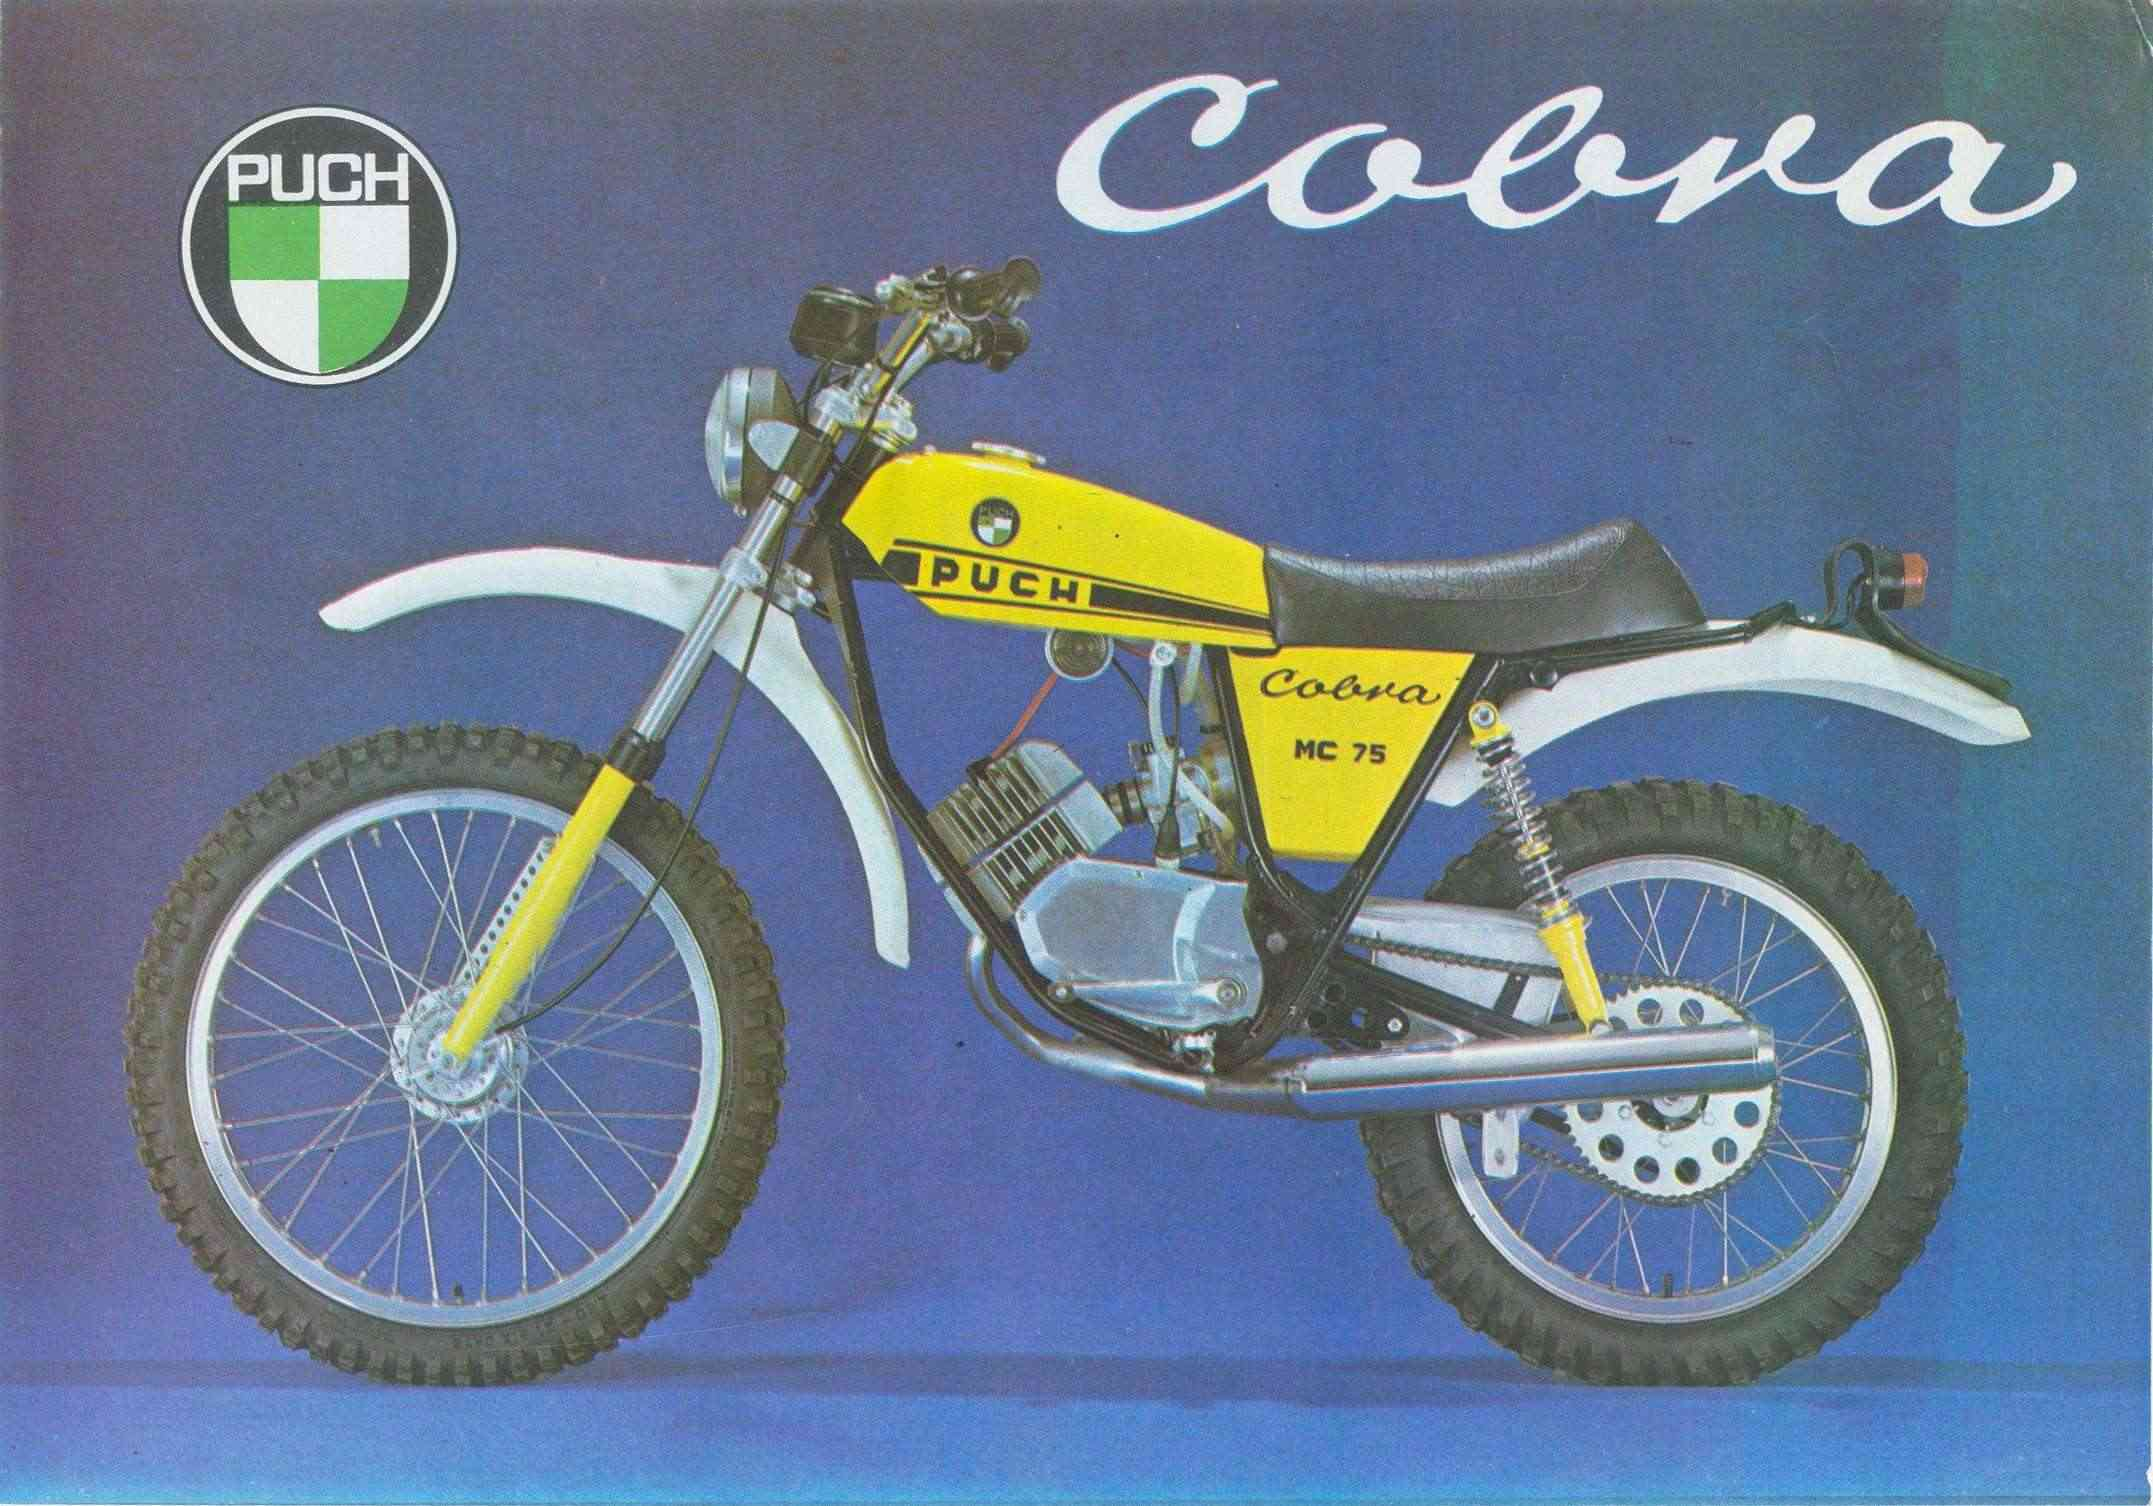 https://www.moto1pro.com/sites/default/files/puch-cobra.jpg